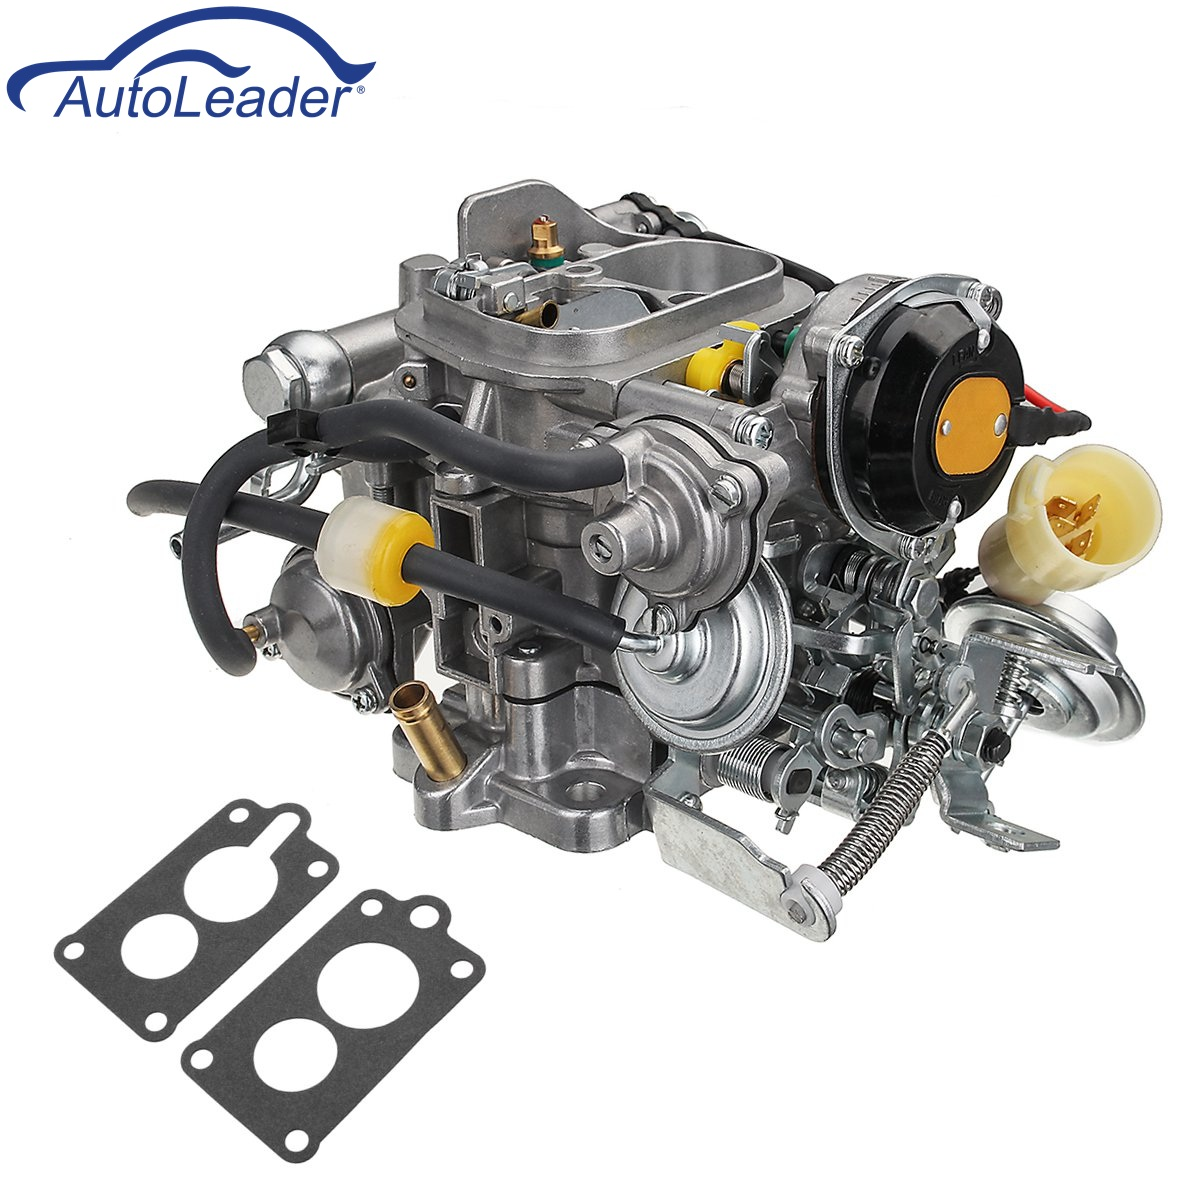 Carburetor 22R Engine Carburetor fits With Plug For TOYOTA PICKUP Trucks 1981-1987 TOY-505 aluminium carb carburetor trucks for toyota 22r celica hilux pickup 4 runner style engines 21100 35520 brand new